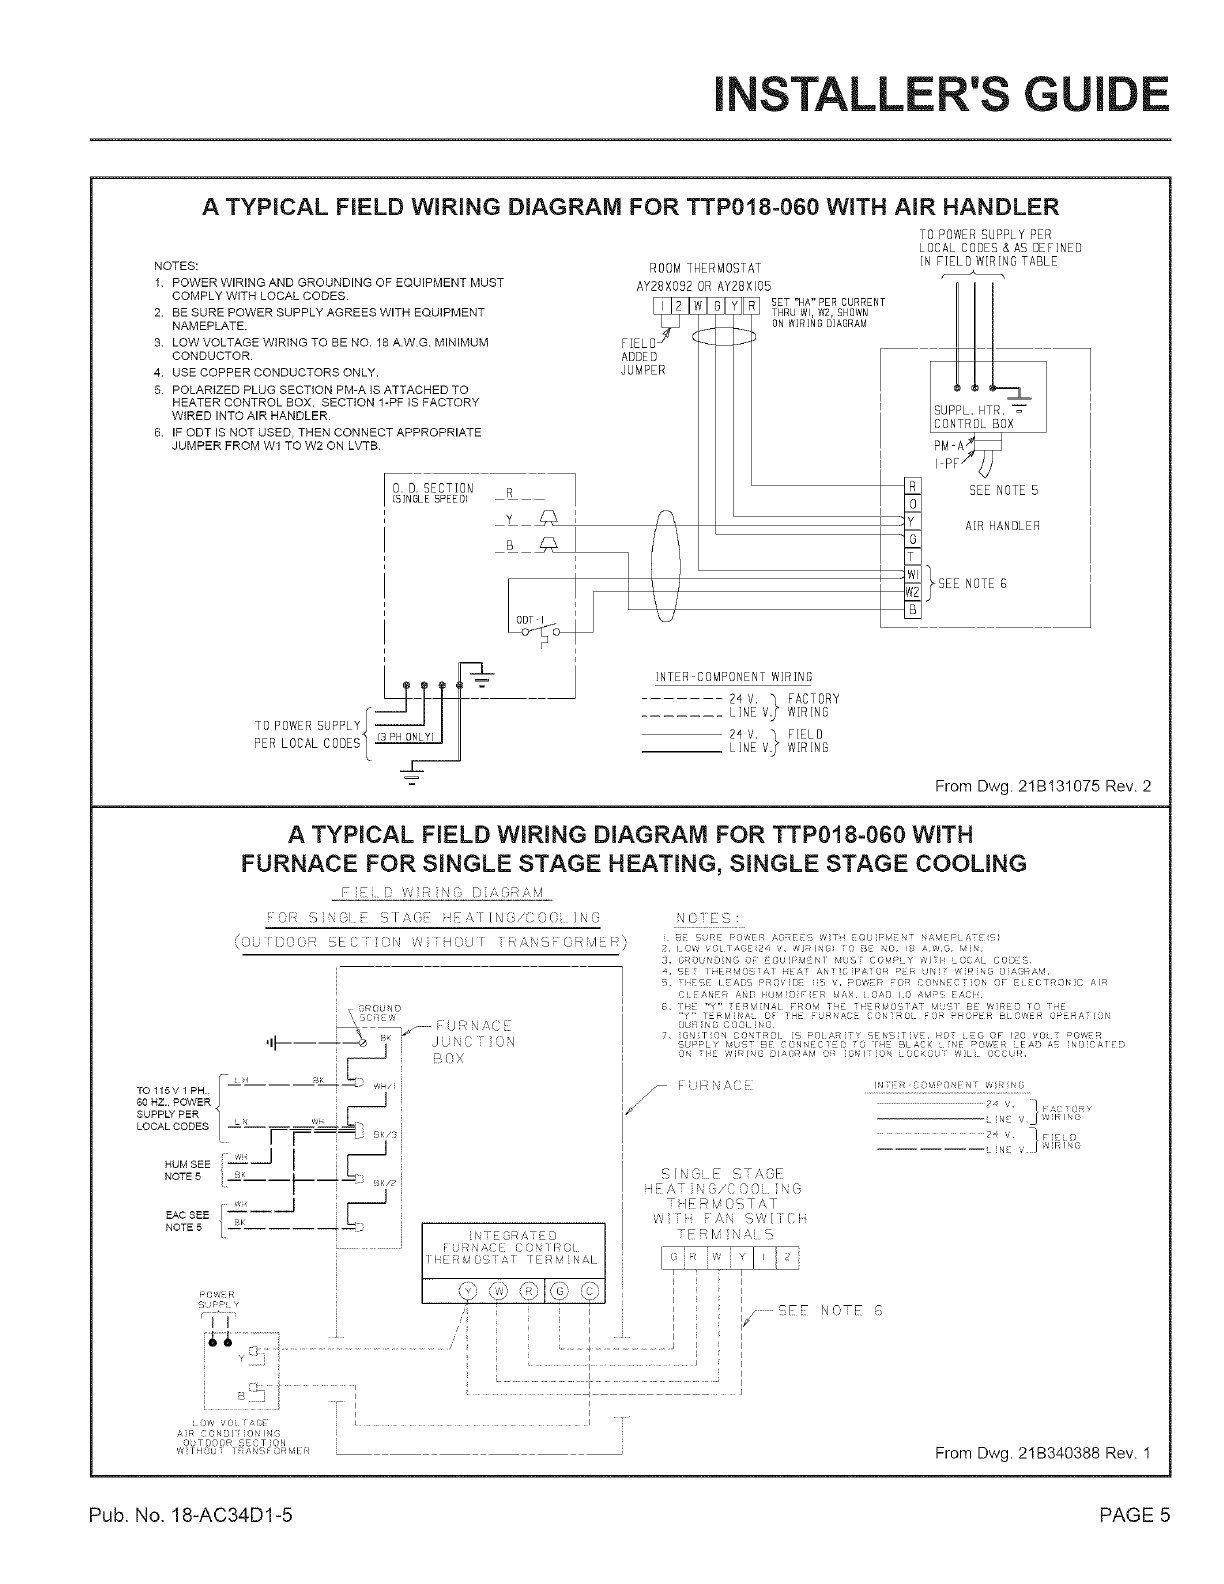 Trane Air Conditioner Heat Pumpoutside Unit Manual L0801741 Diagram Handler Also In Addition Installers Guide A Typical Field Wiring For Ttp018 060 With